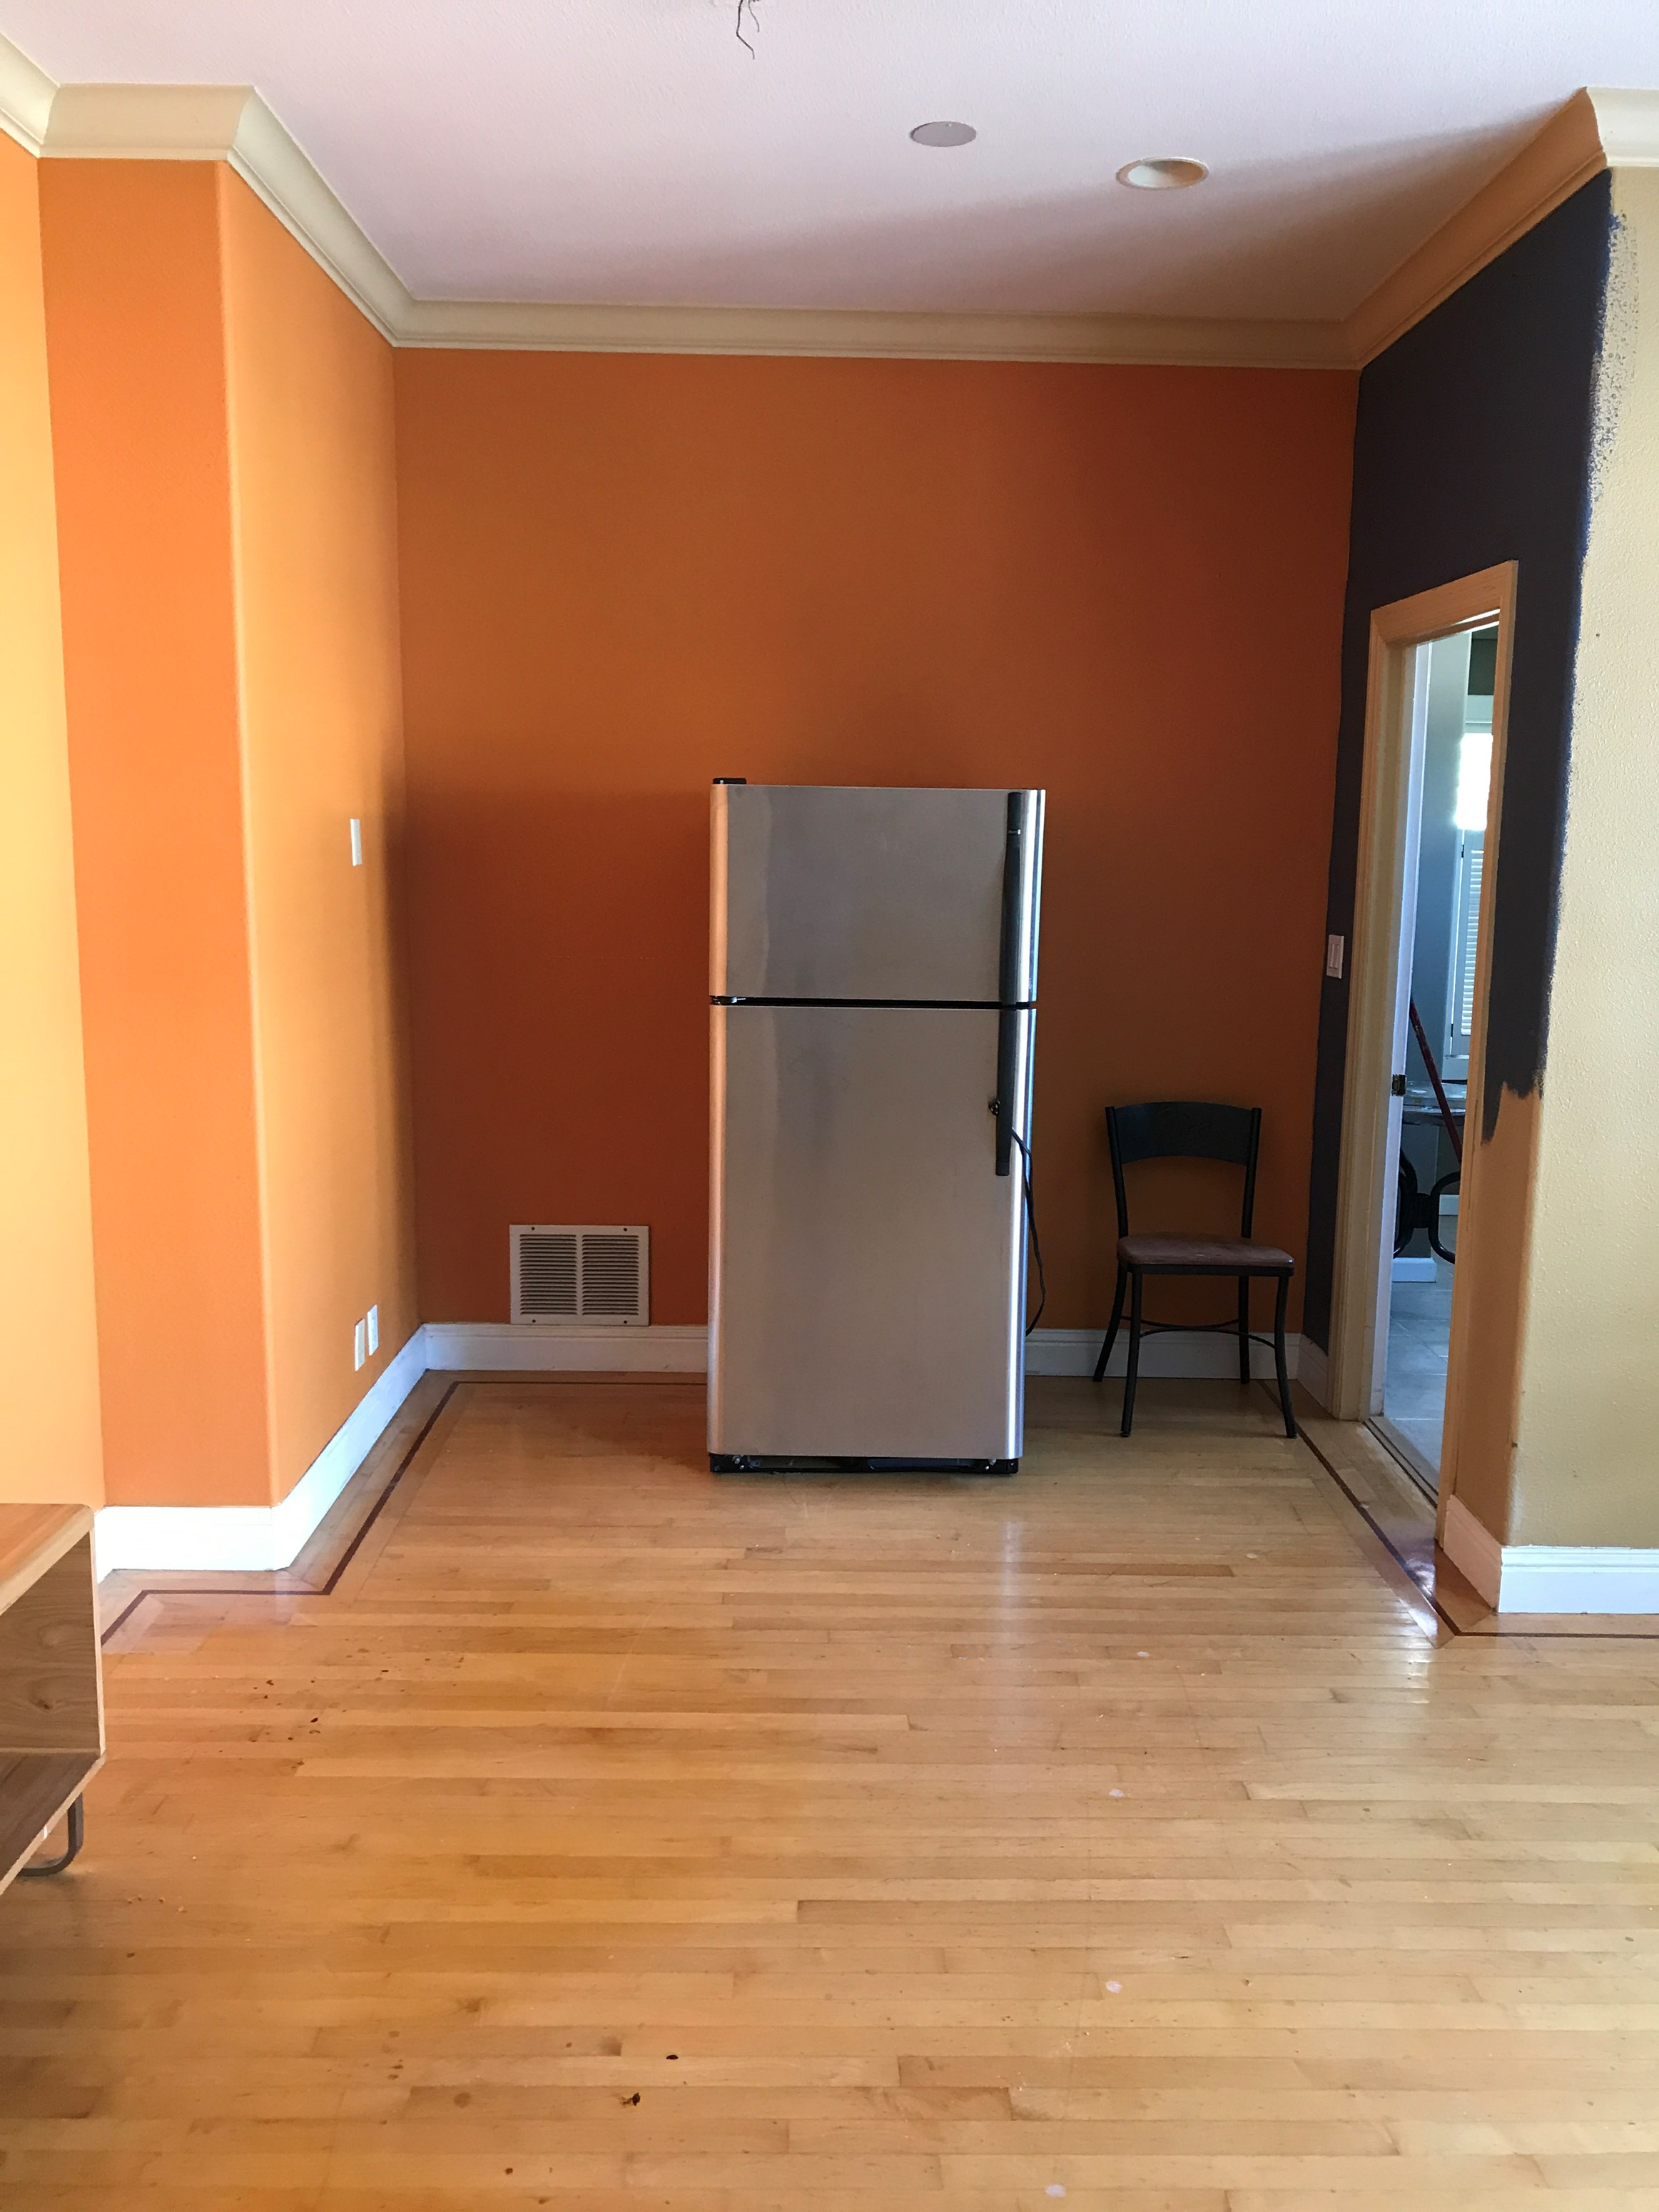 House for Rent in Bay Area Apartments Flats Commercial Space